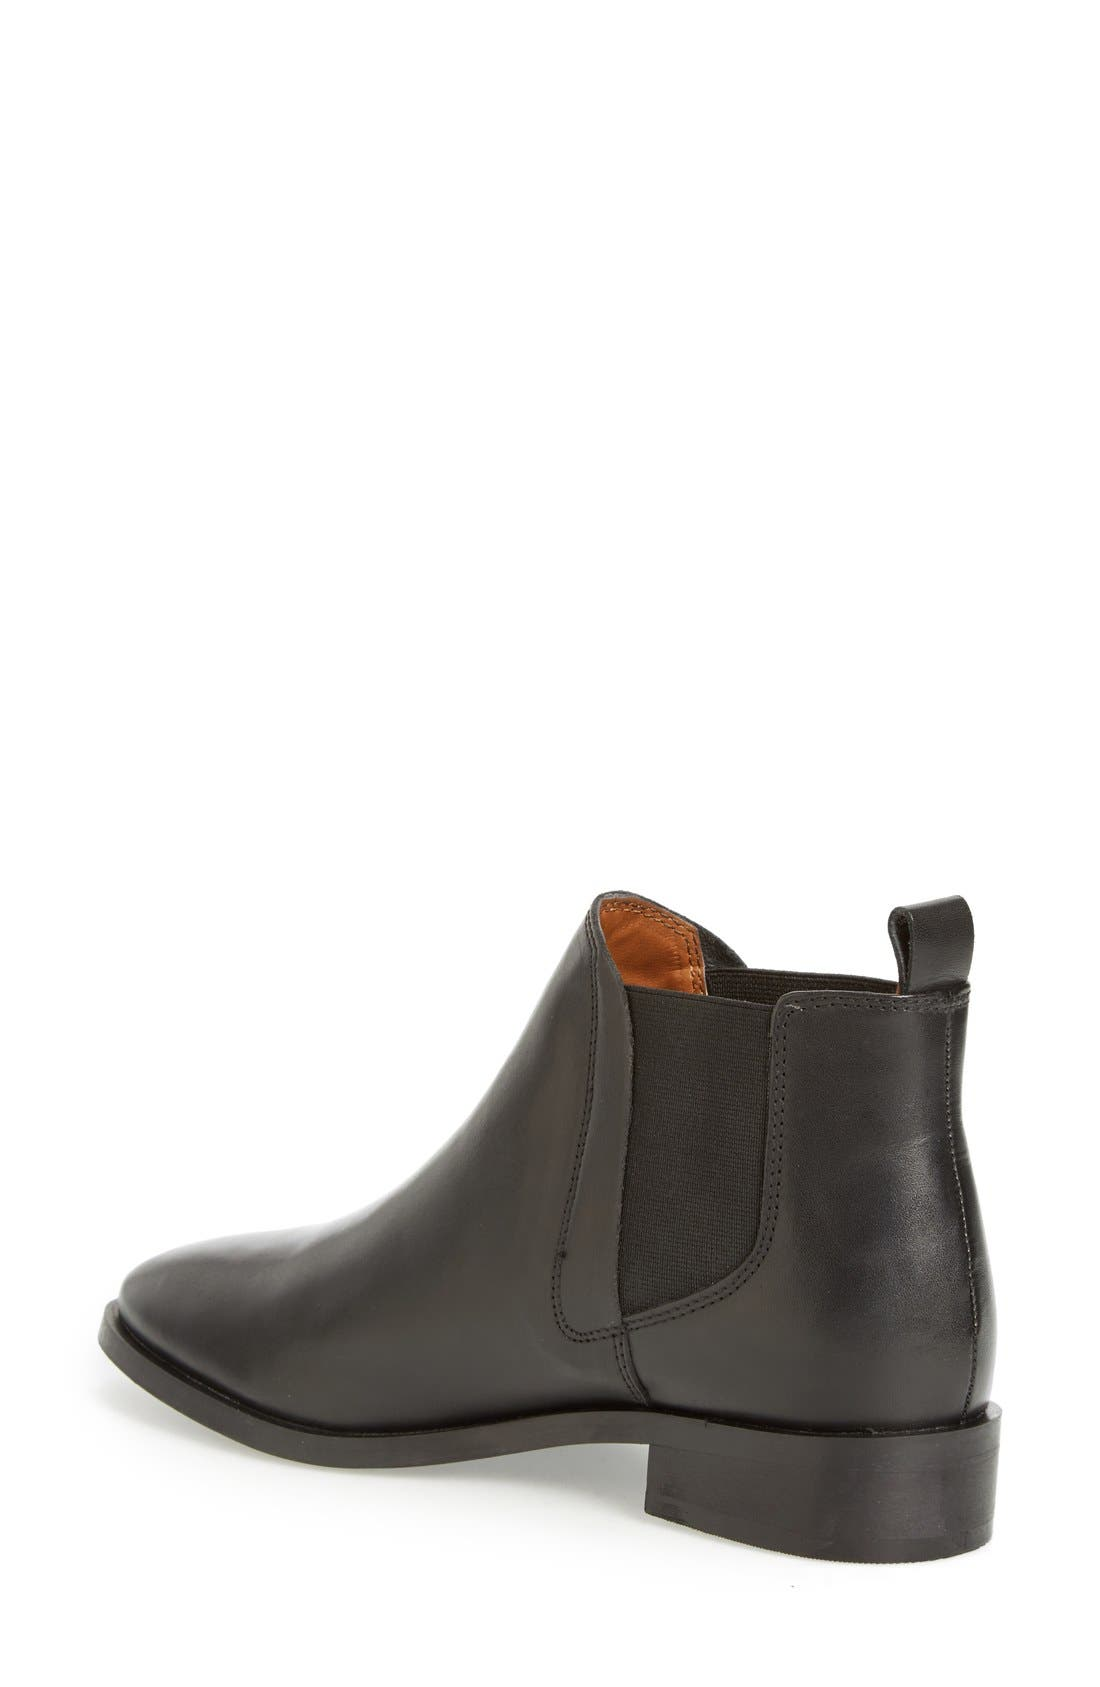 Alternate Image 2  - Topshop 'Kaiser' Chelsea Boot (Women)